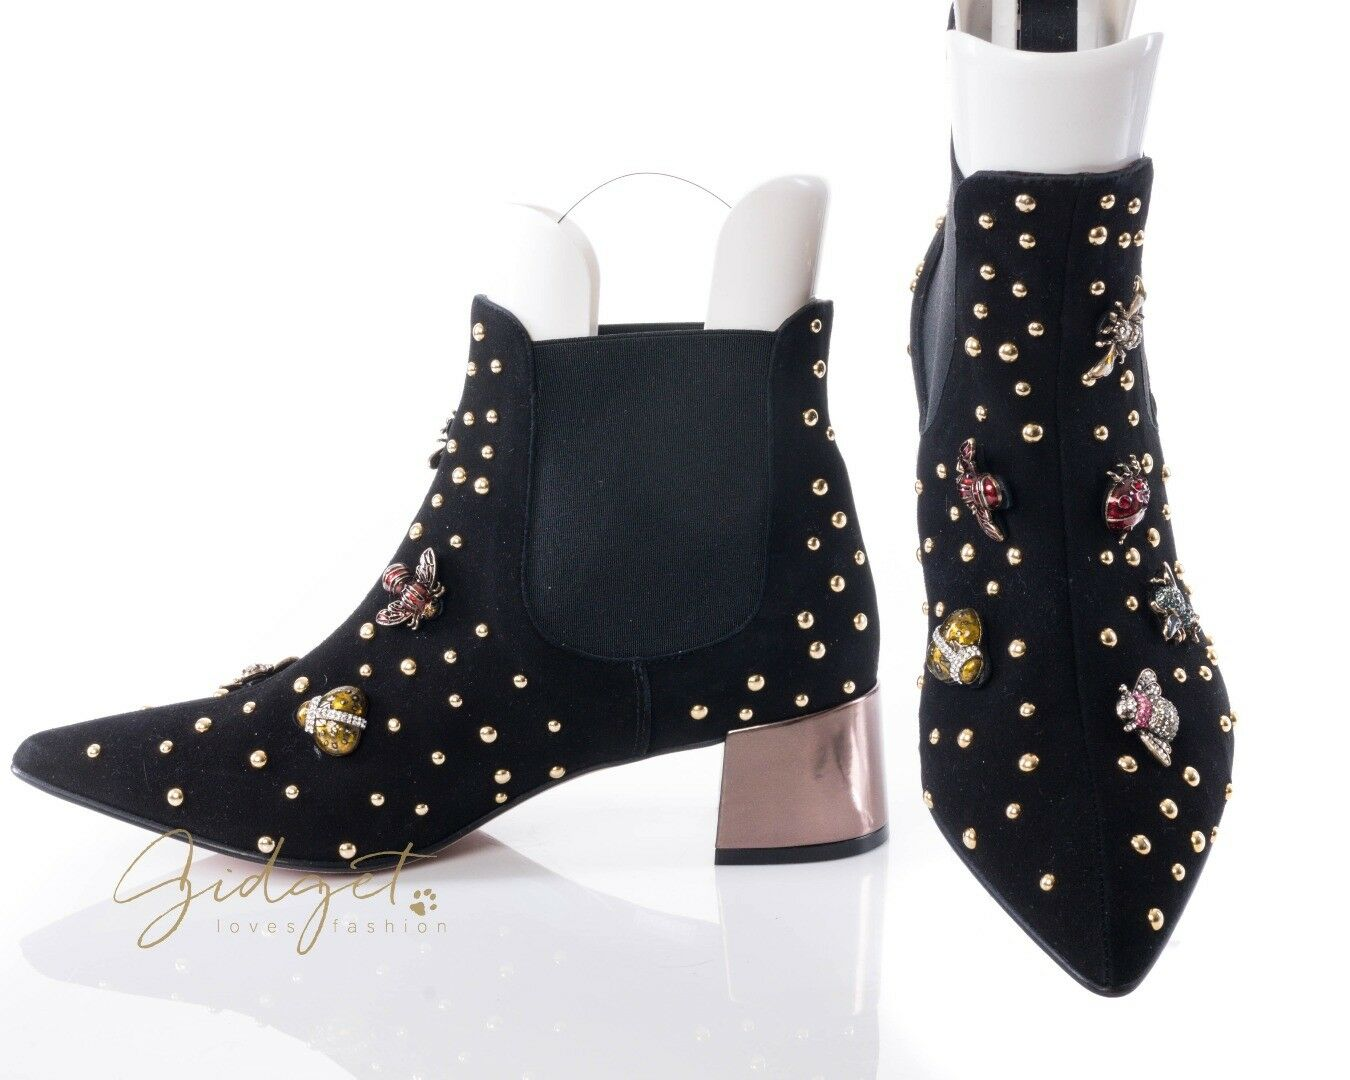 RAS shoes Amalfi Size 38   7 Black Suede Jeweled Bug Booties Ankle Boots